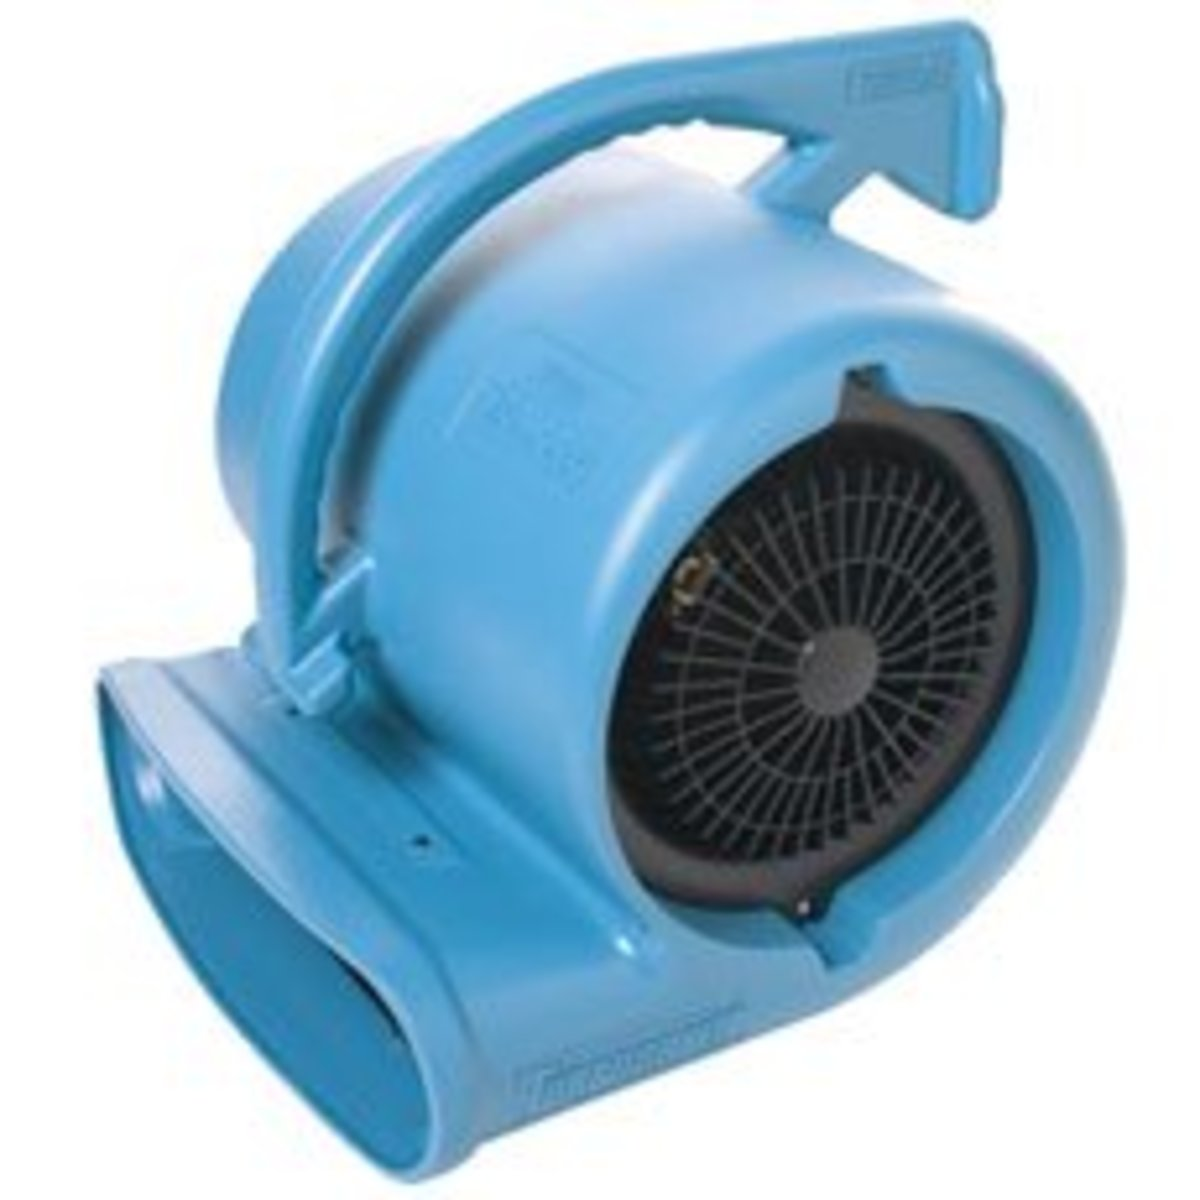 Cage dryer. Air volume: 2,250 CFM. Air speed: 2,250 FPM. Heat: warm air (no heating element).  Motor: 1/4 HP (single speed). Amps: 7.2. Volts: 110.